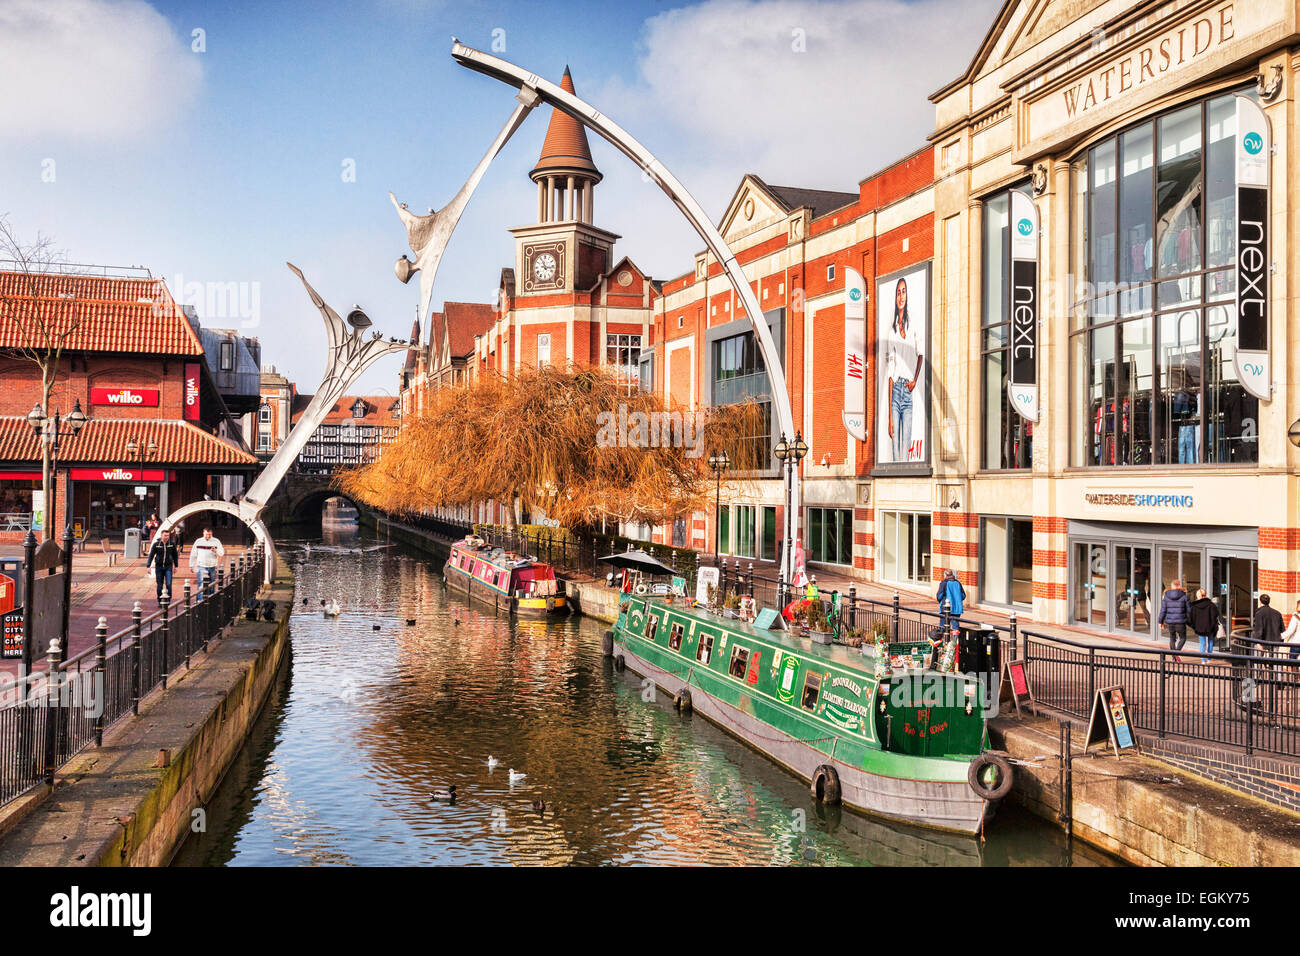 Waterside Shopping Centre and the River Witham, Lincoln, Lincolnshire, England, UK, on a sunny winter day. - Stock Image